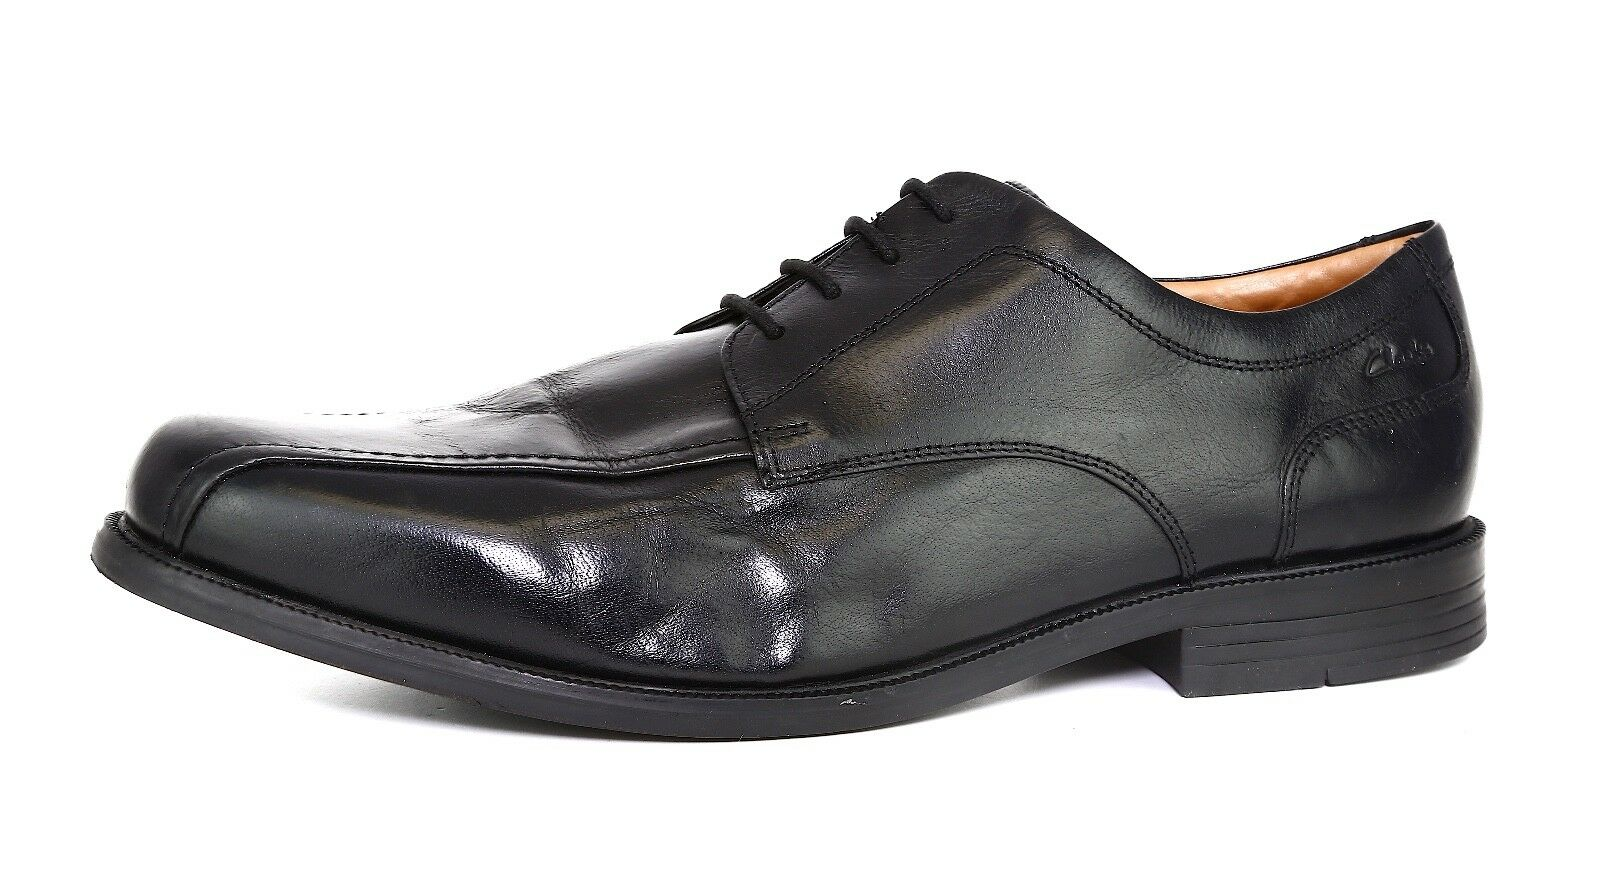 Clarks Beeston Stride Leather Oxford Black Men Sz 14 1268